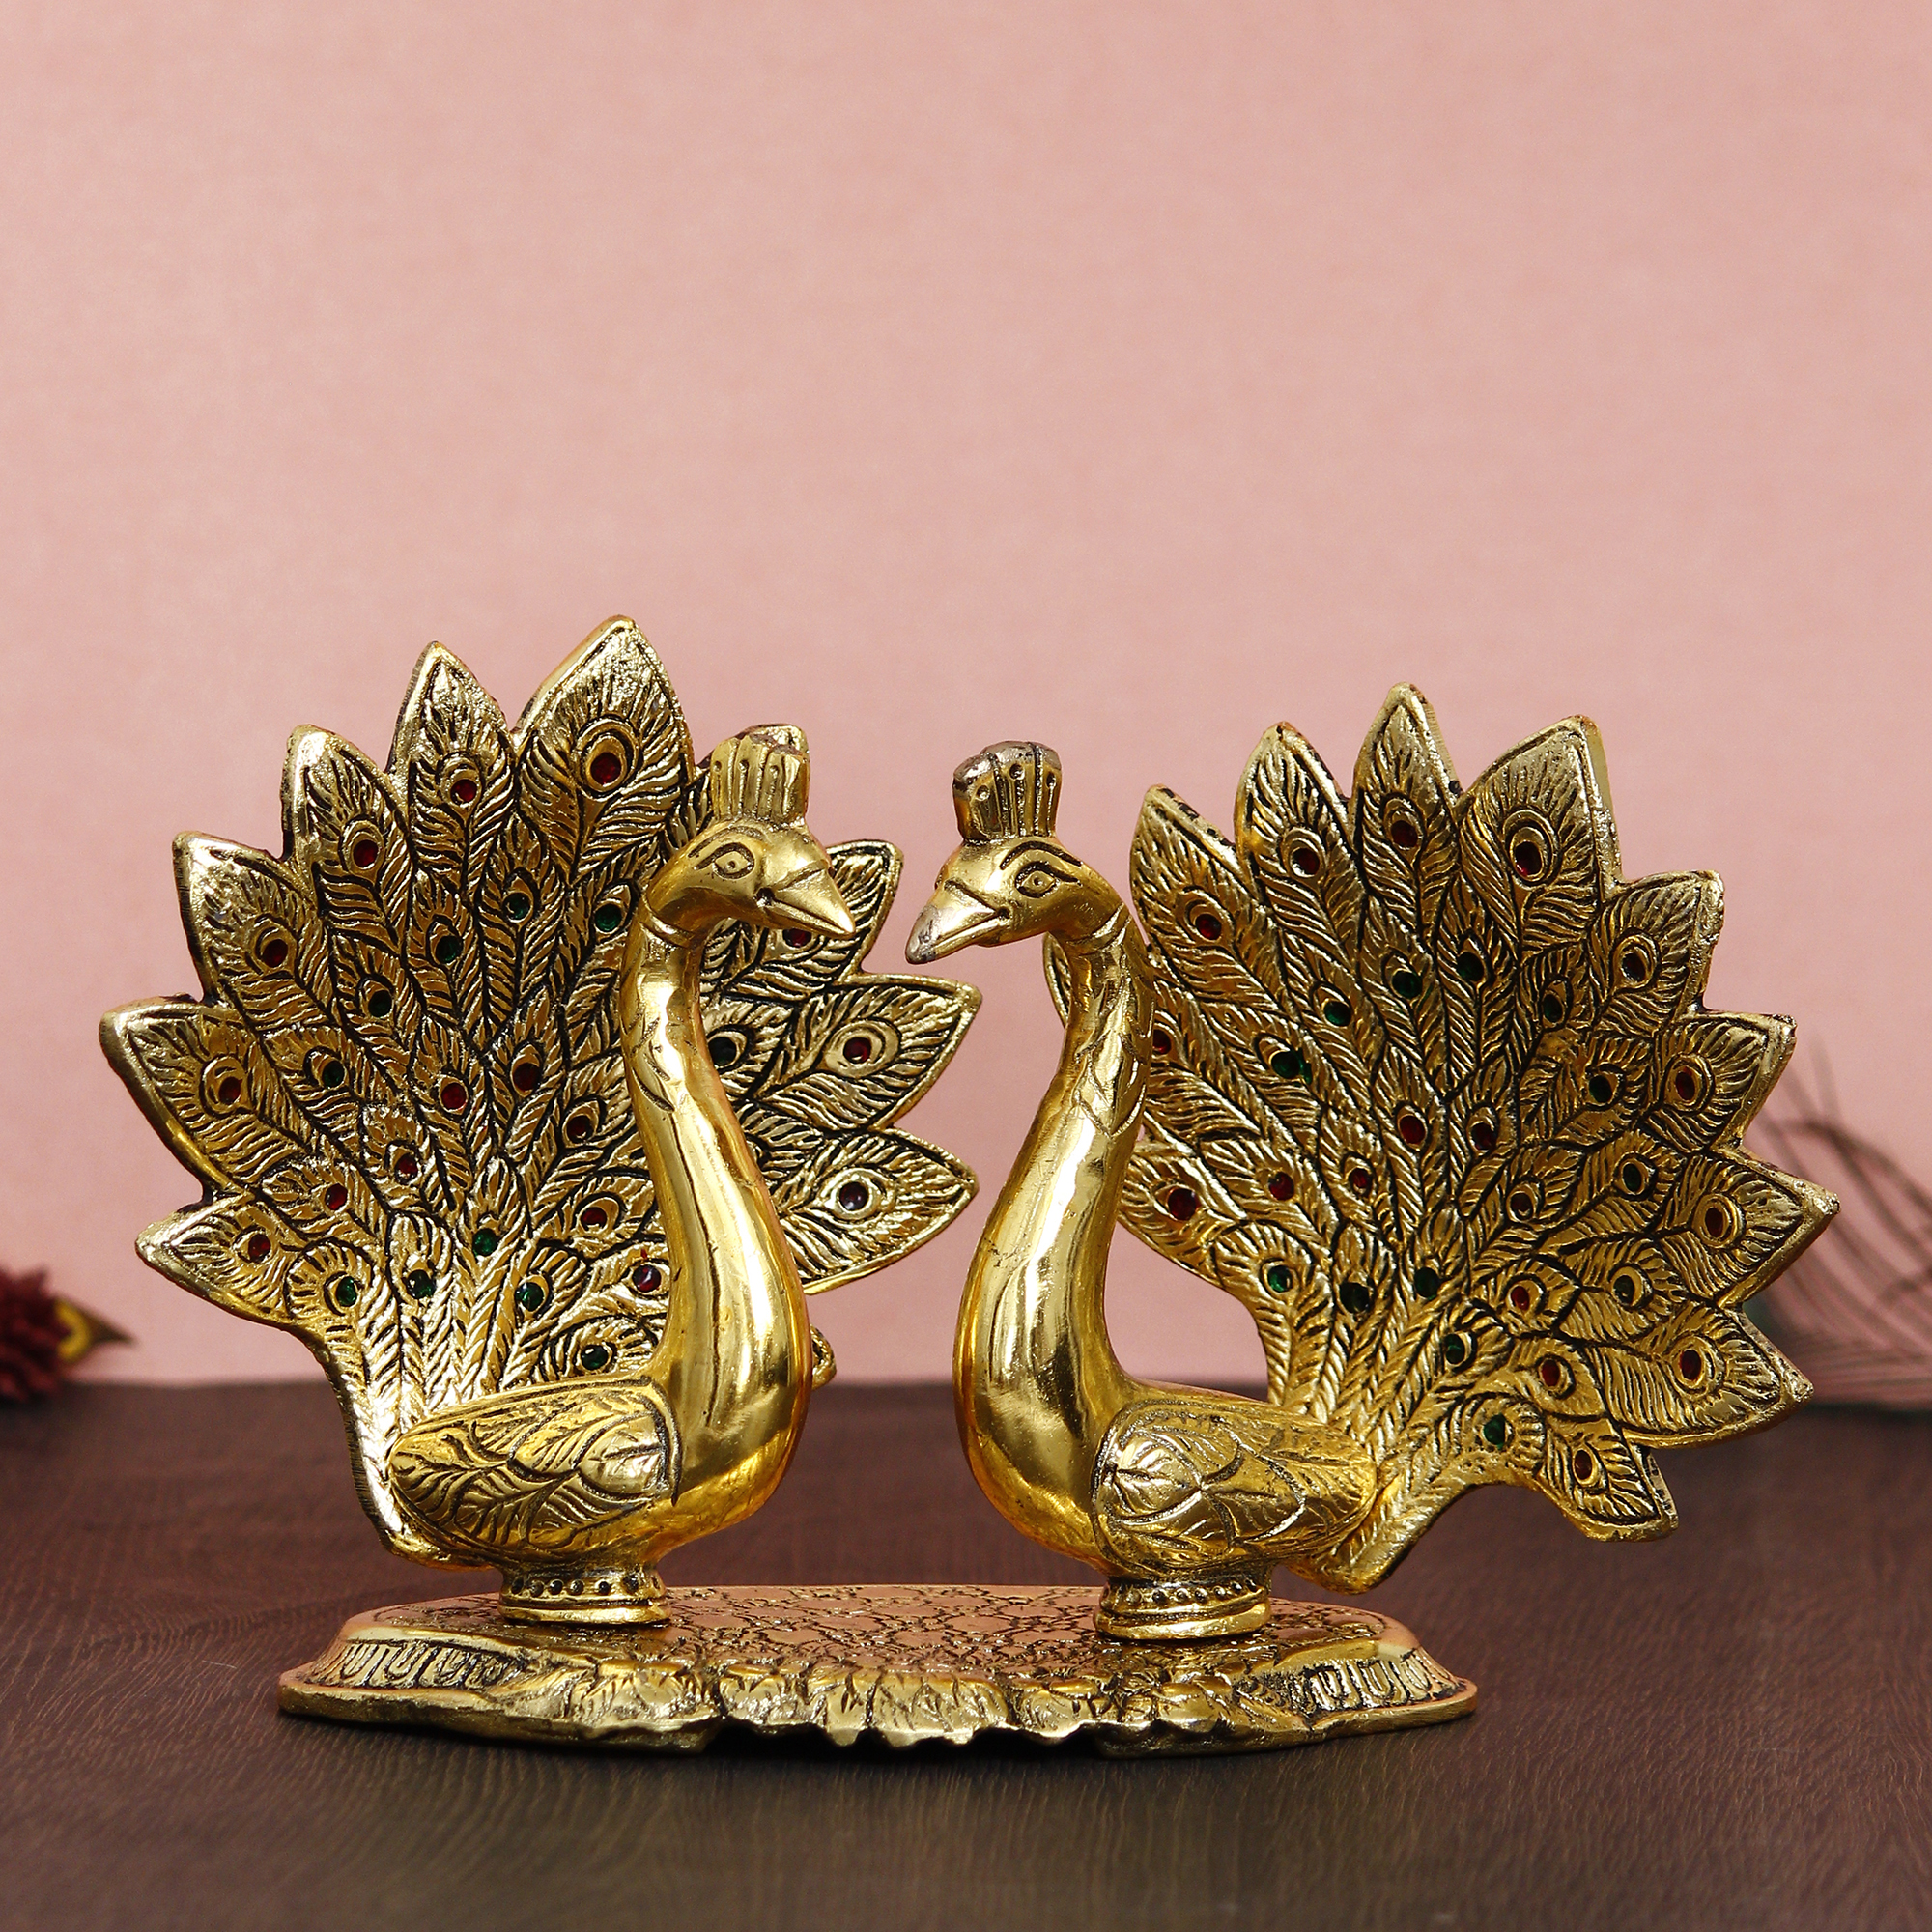 Loving Golden Swan with Feather Couple 6Inch Decorative Metal Figurine Indian Home Decor